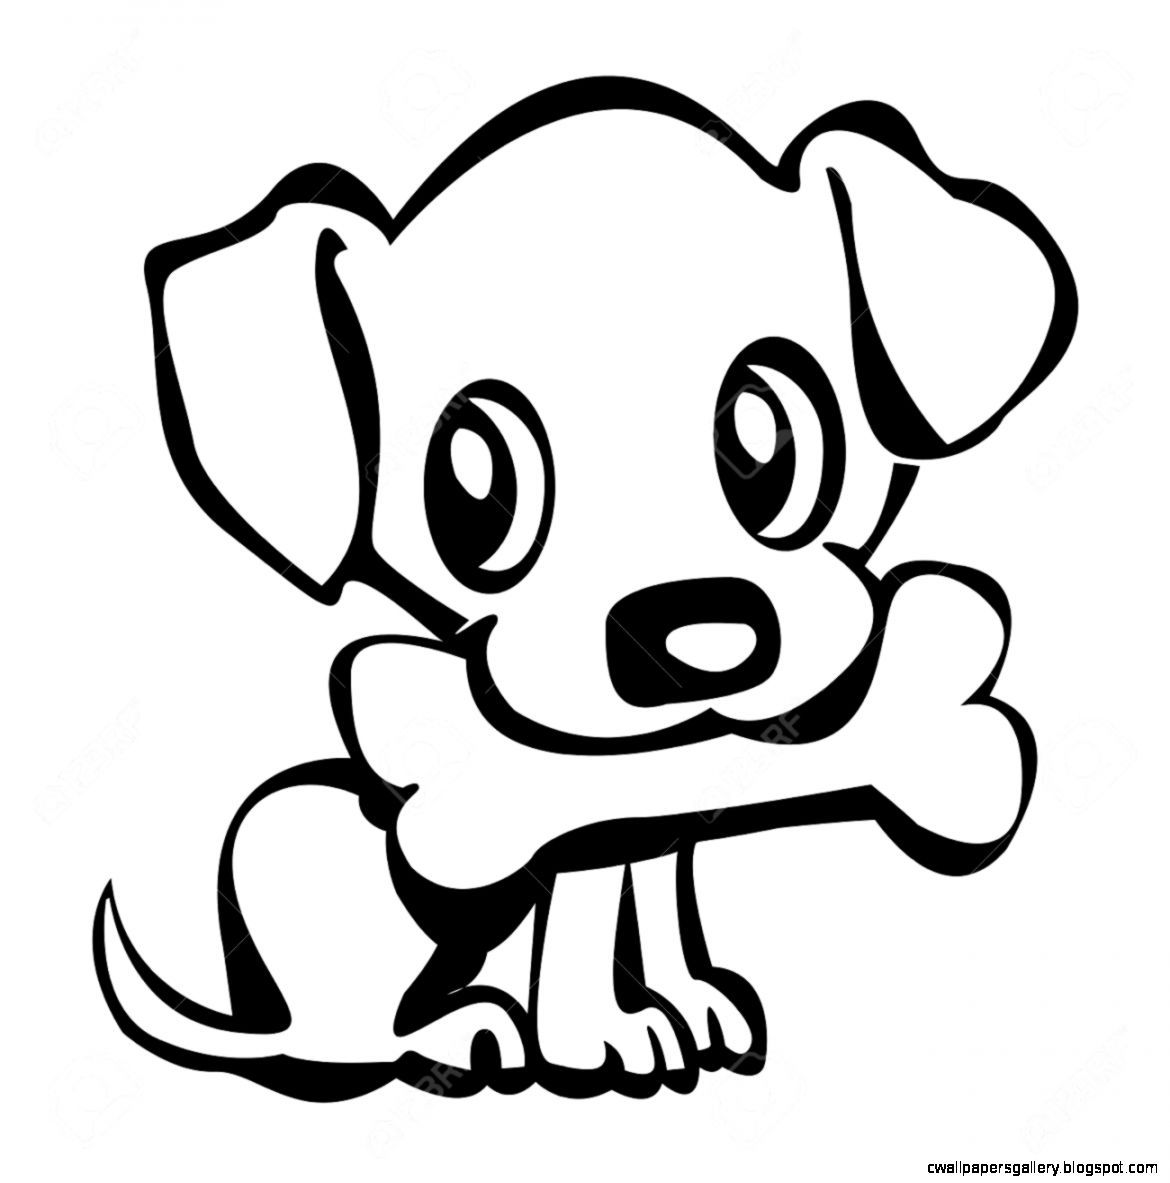 1170x1183 cute dog face drawing tattoos drawings, cute dog drawing, cute